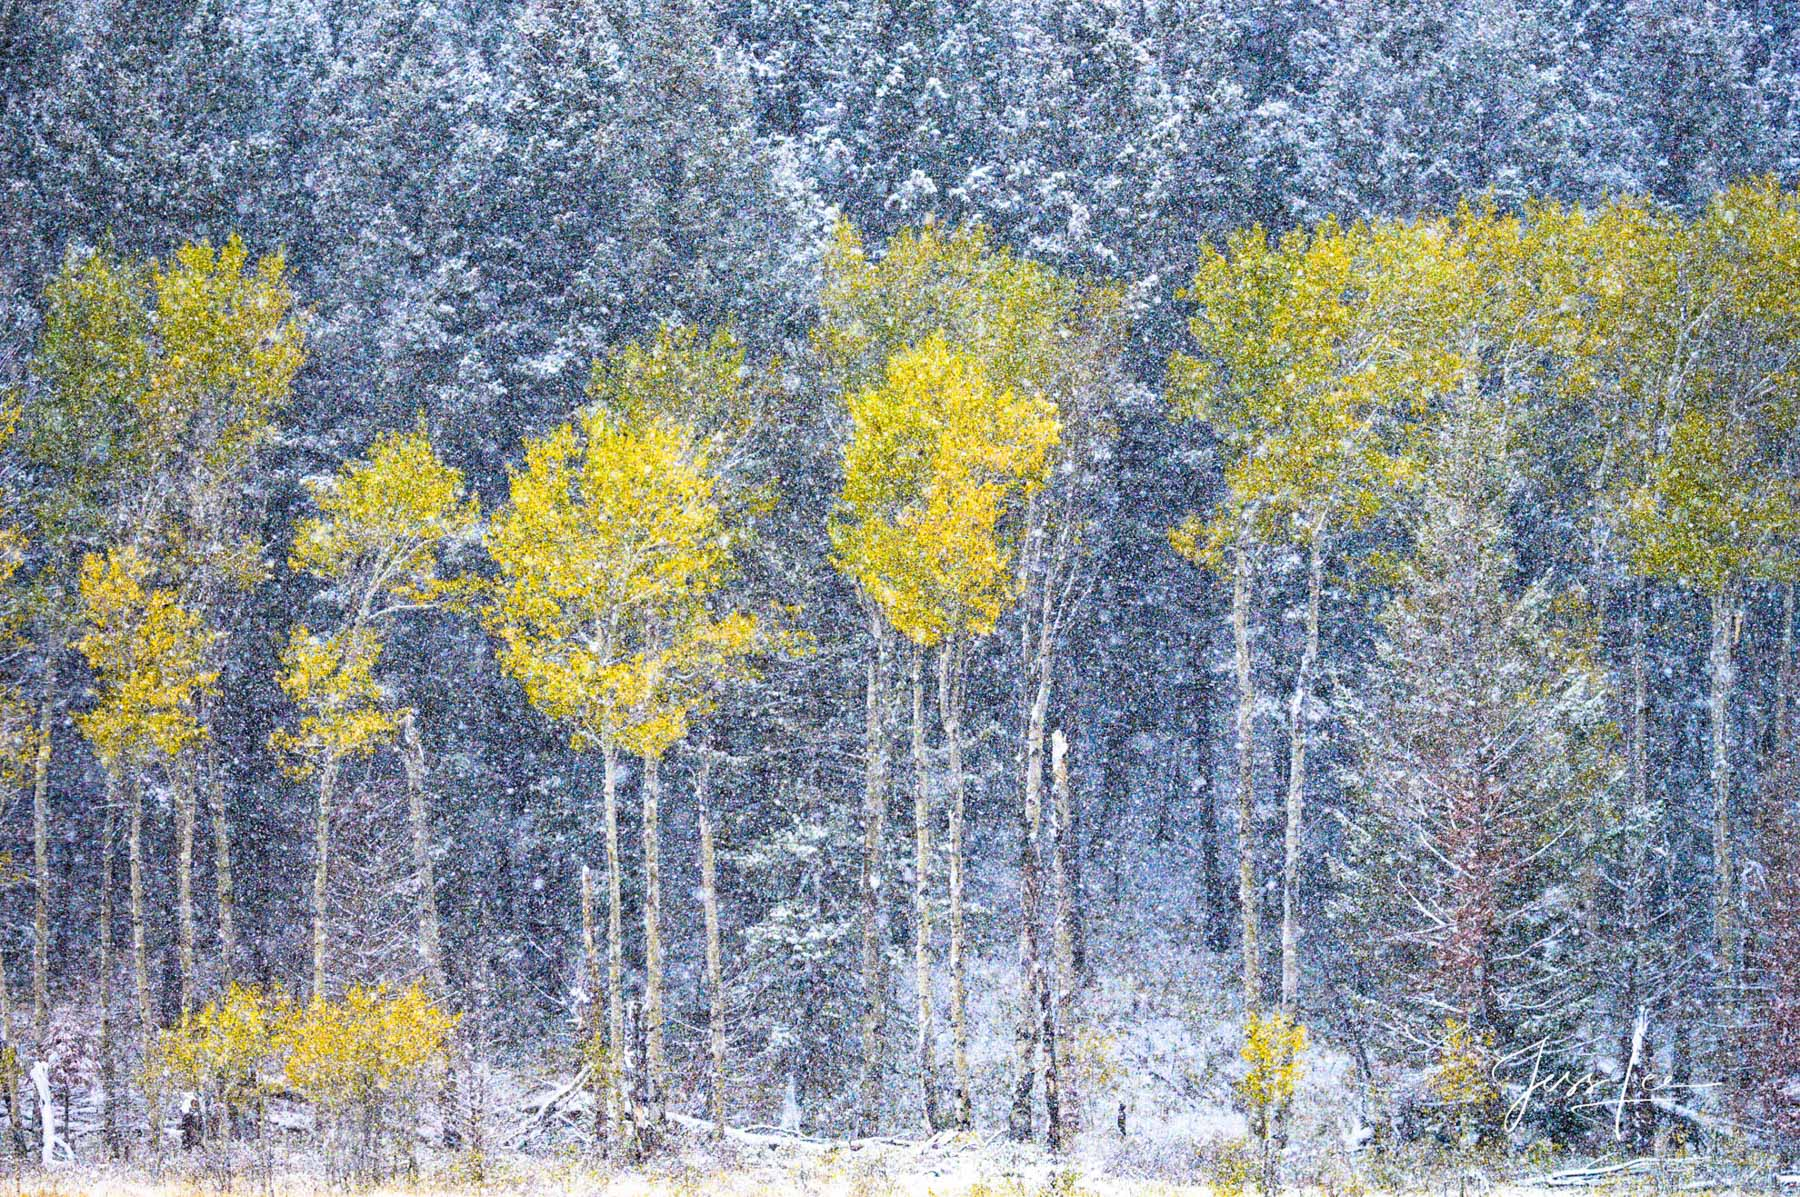 Aspen trees on the edge of the Pine forest in a brief fall snowstorm photography., photo